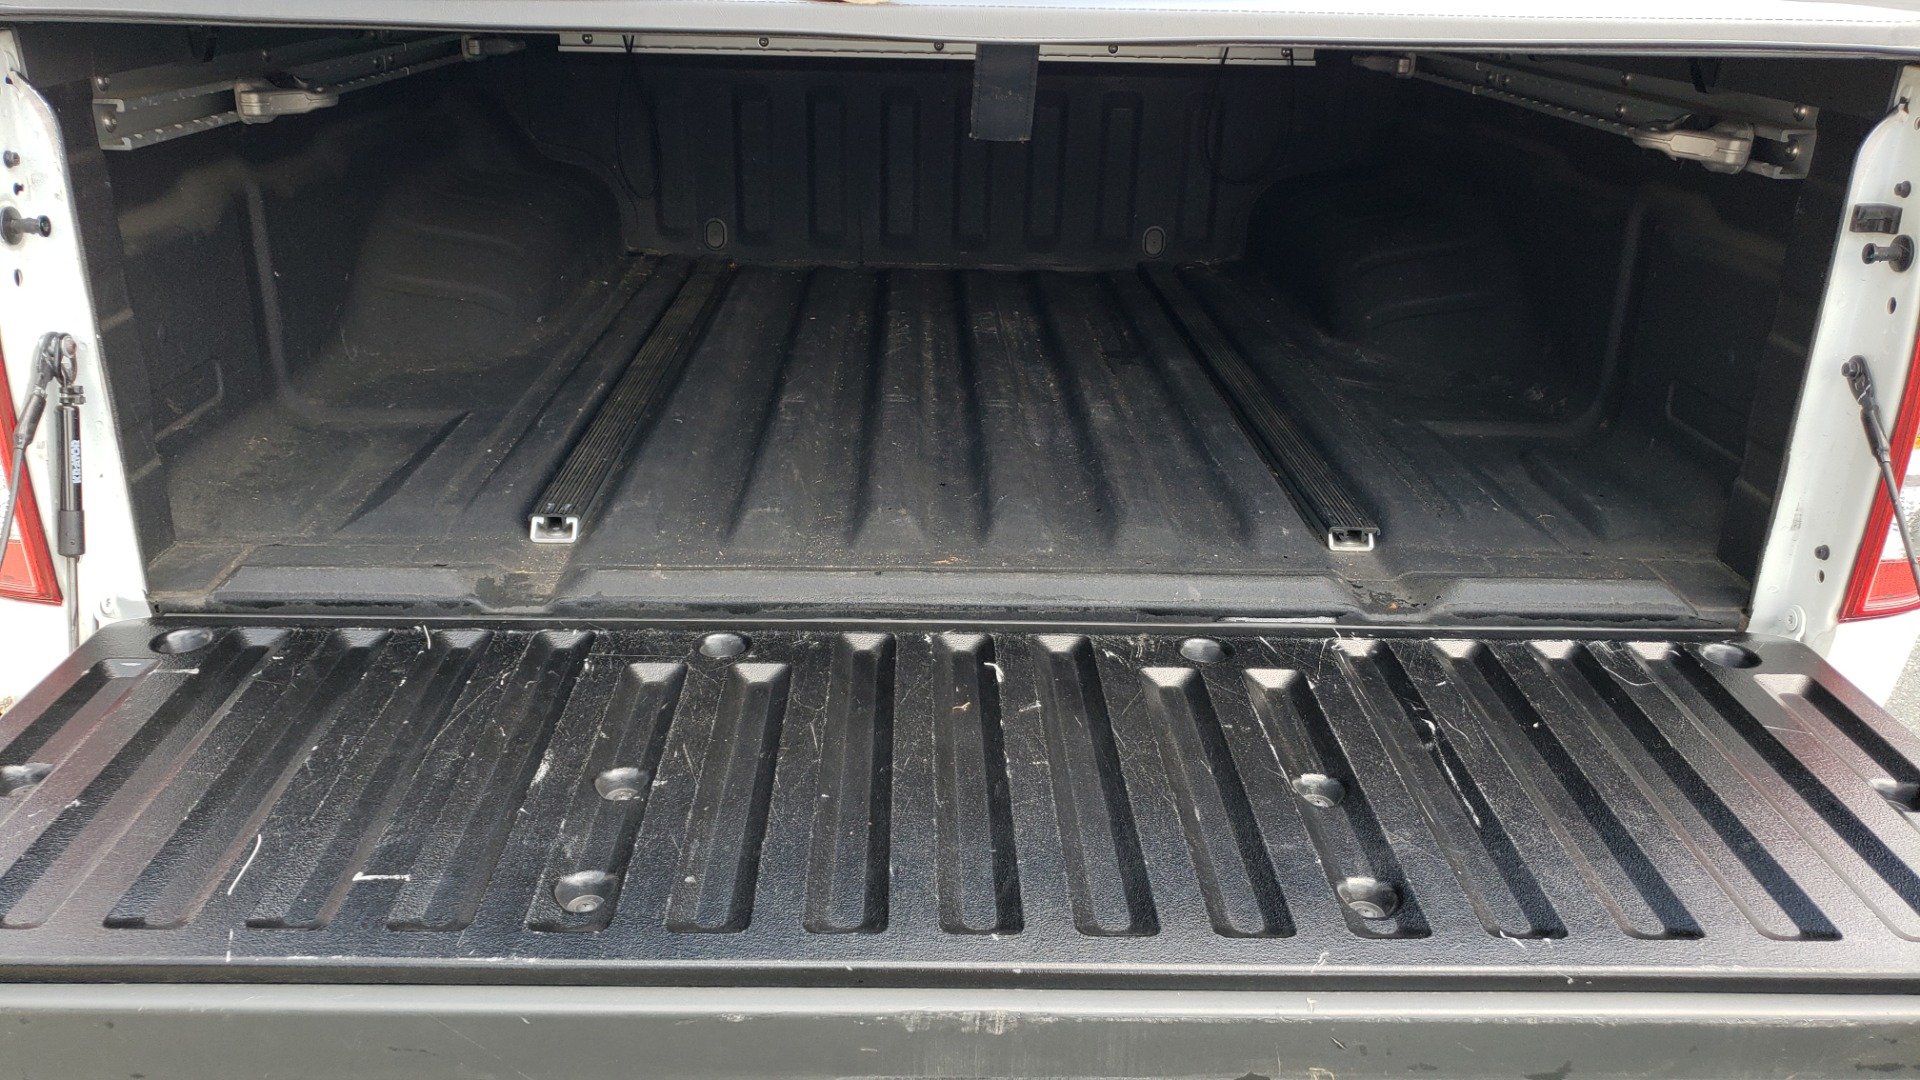 Used 2019 Nissan FRONTIER SL CREW CAB / 4X4 / NAV / SUNROOF / ROCKFORD FOSGATE / LOADED for sale $31,495 at Formula Imports in Charlotte NC 28227 18